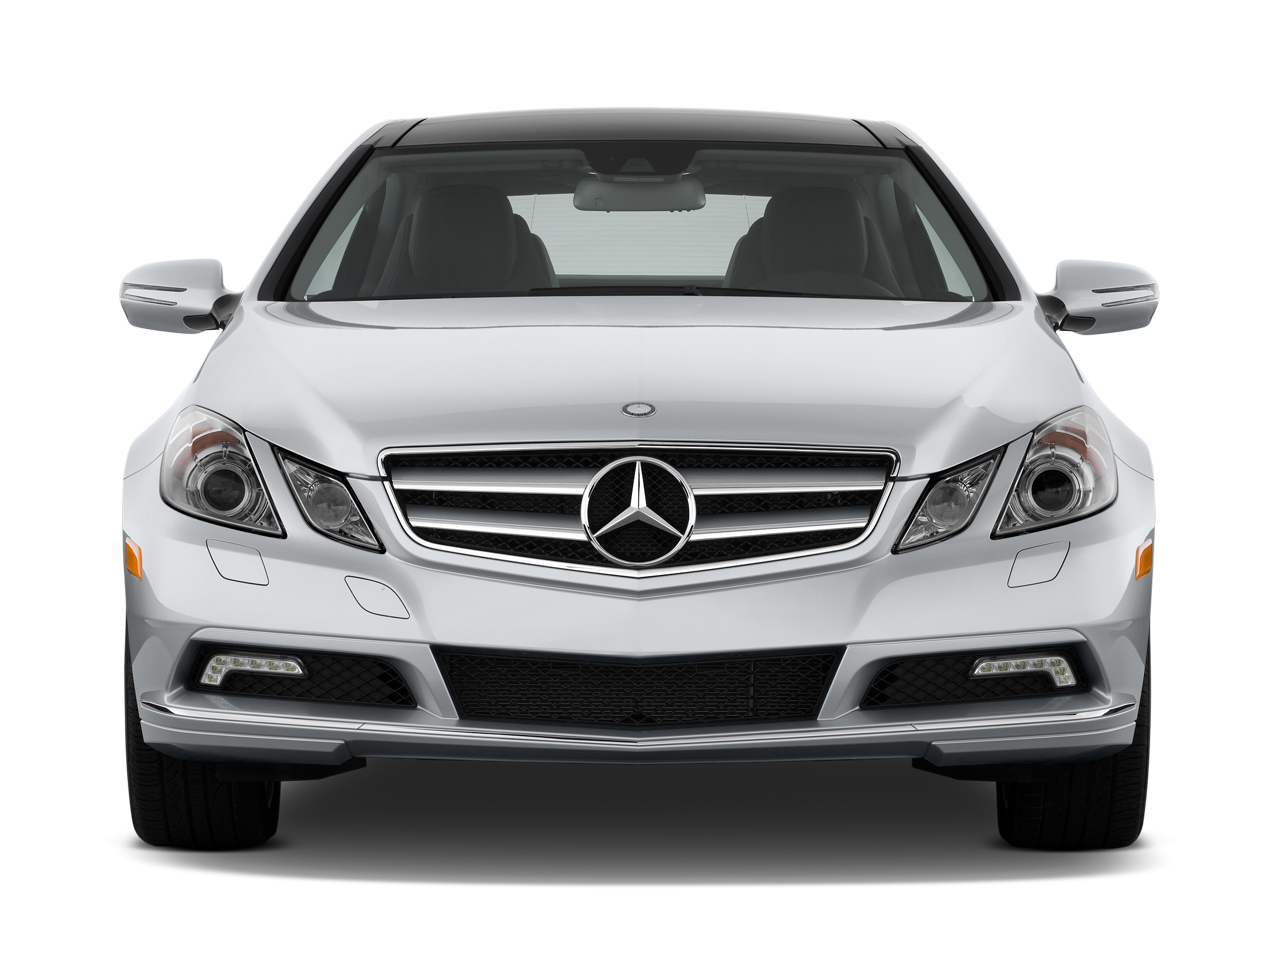 2011 mercedes benz e class diesel others recalled for fuel leak. Black Bedroom Furniture Sets. Home Design Ideas